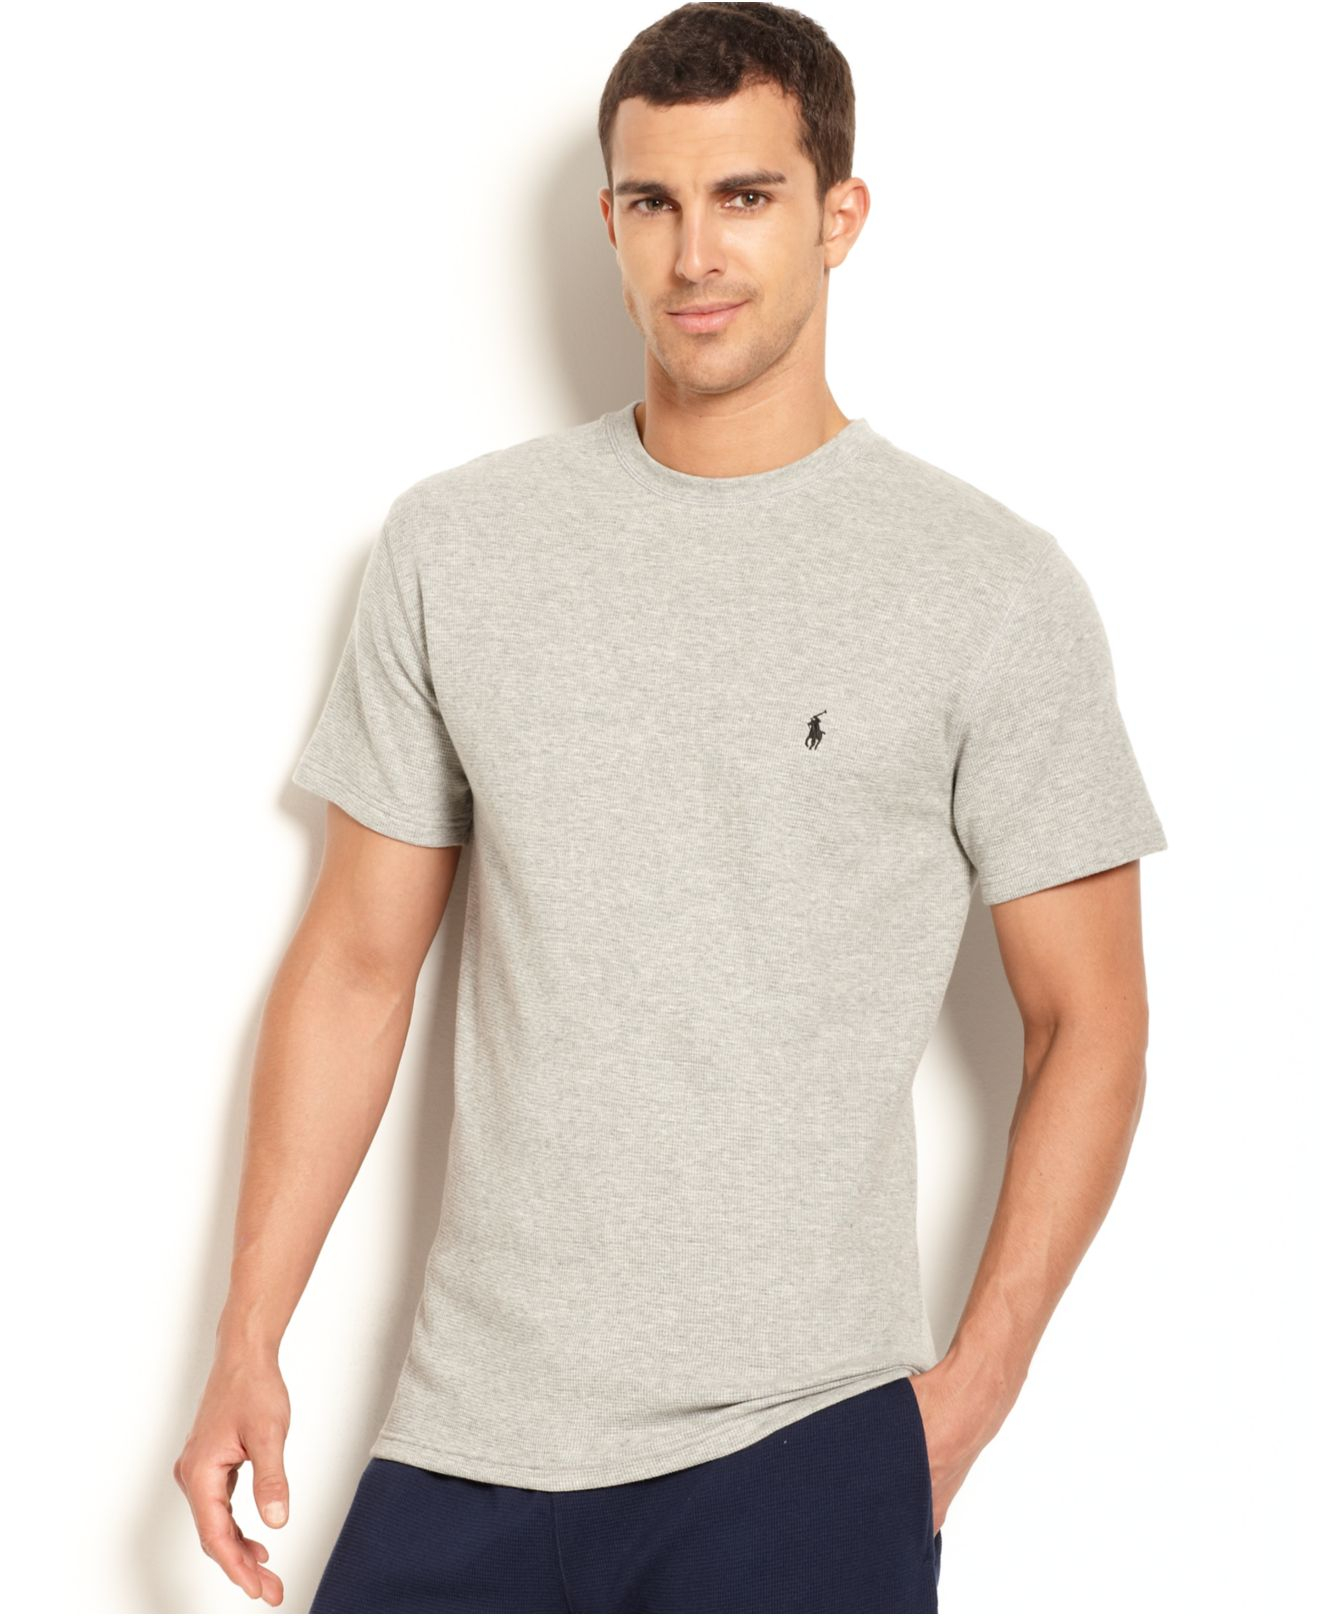 Polo Ralph Lauren Waffle Knit Thermal Crew Neck T Shirt In